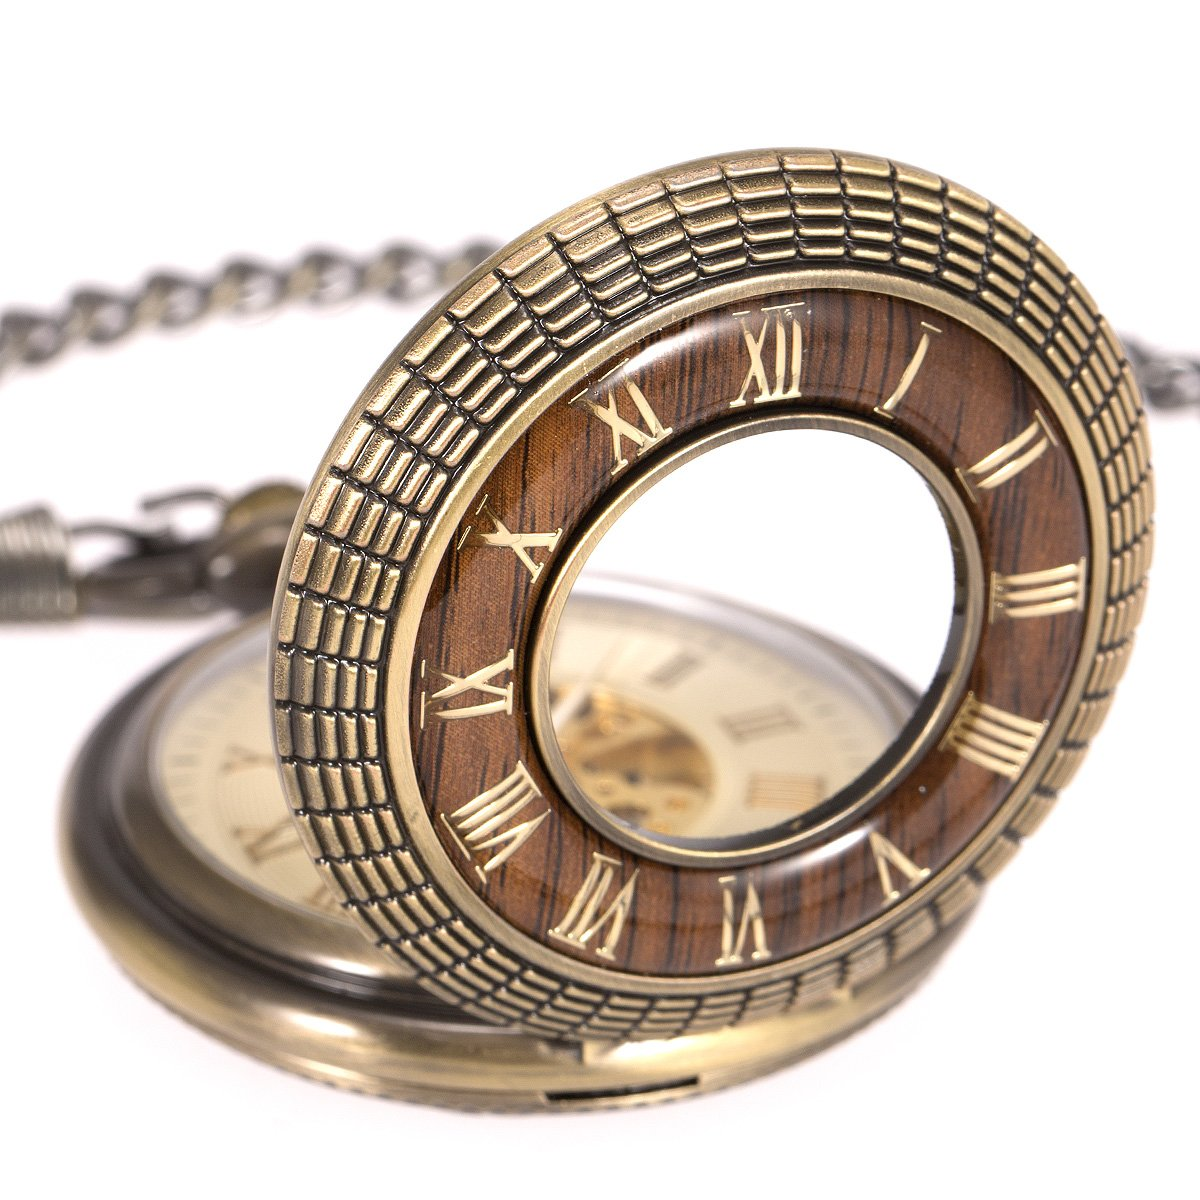 ManChDa Mens imitative wood Luminous Skeleton Mechanical Roman Numerals Pocket Watch With Chain Gift by ManChDa (Image #4)